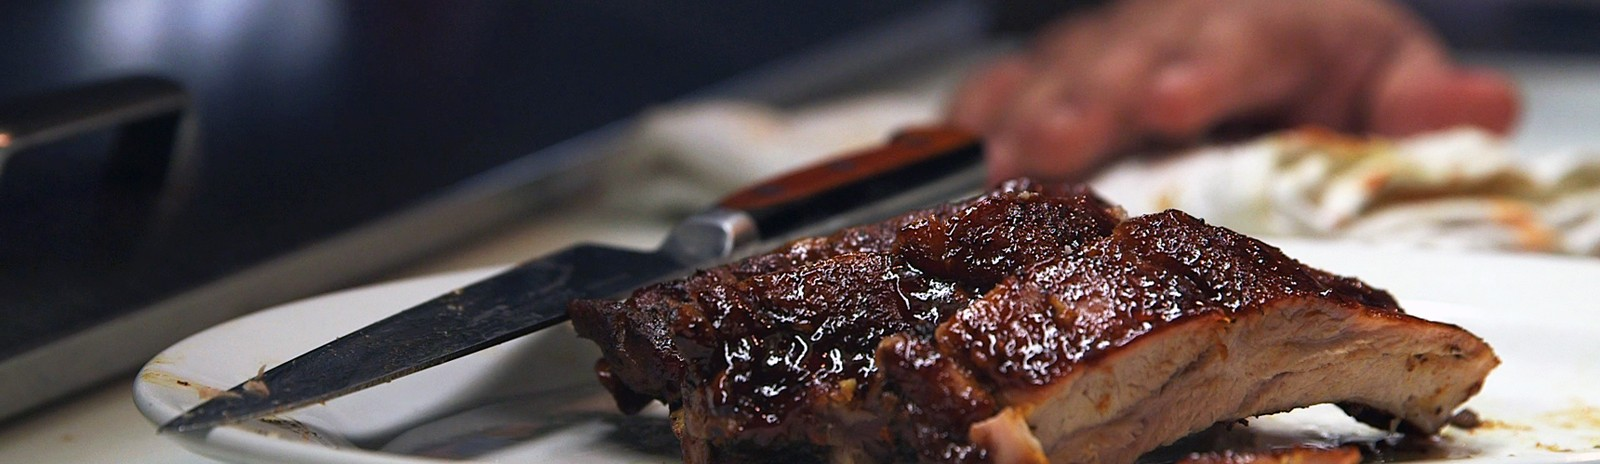 How-To: Make Pinoy-Style Ribs